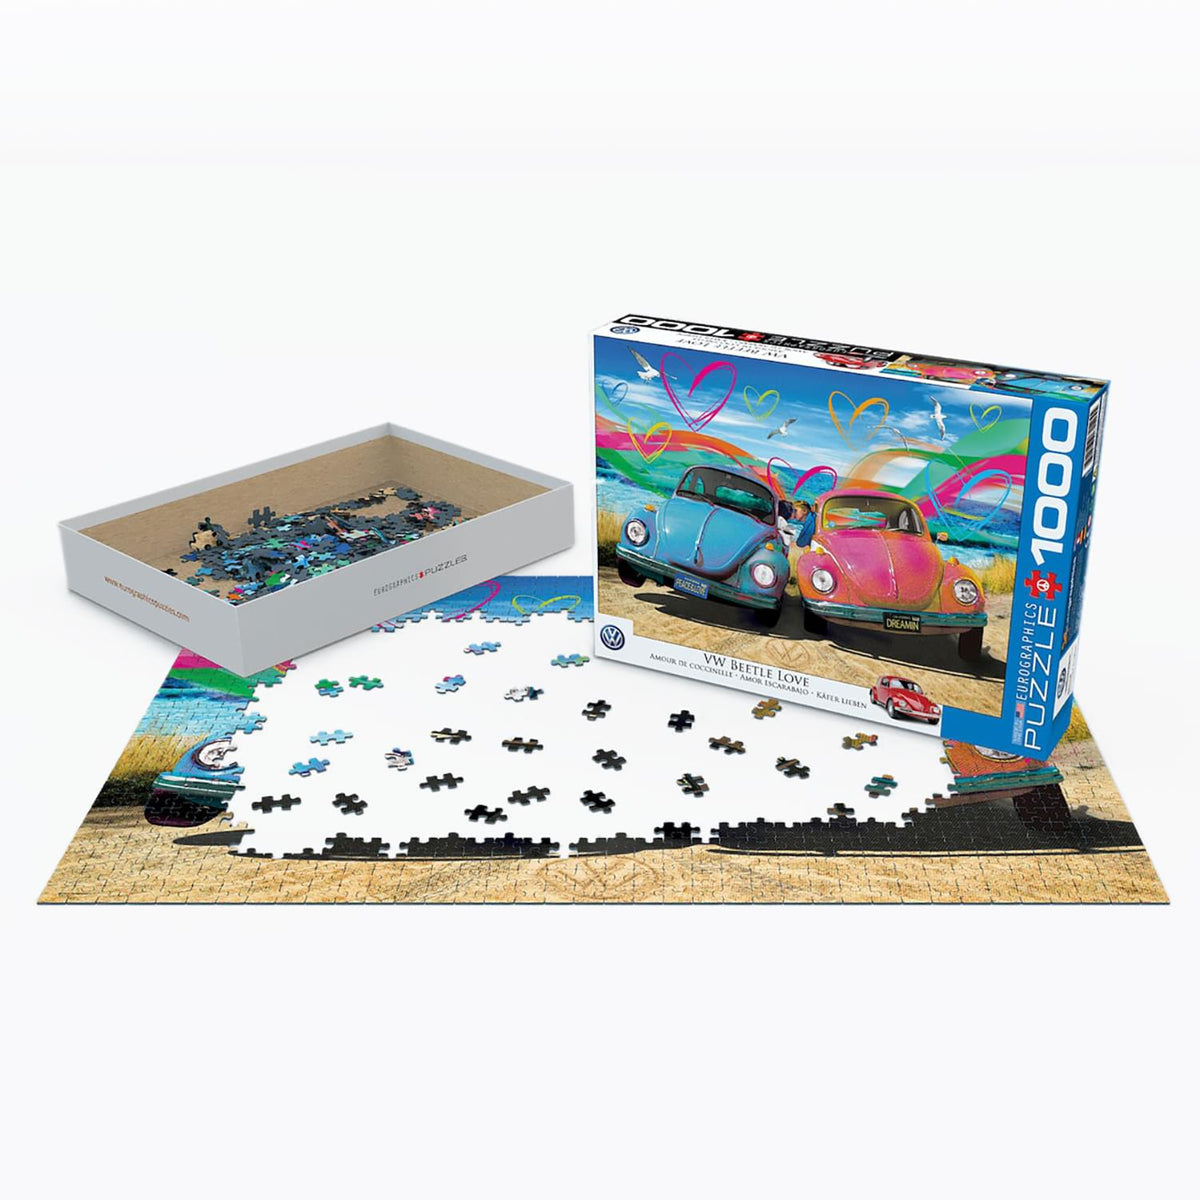 VW Beetle Love 1000 Piece Jigsaw Puzzle